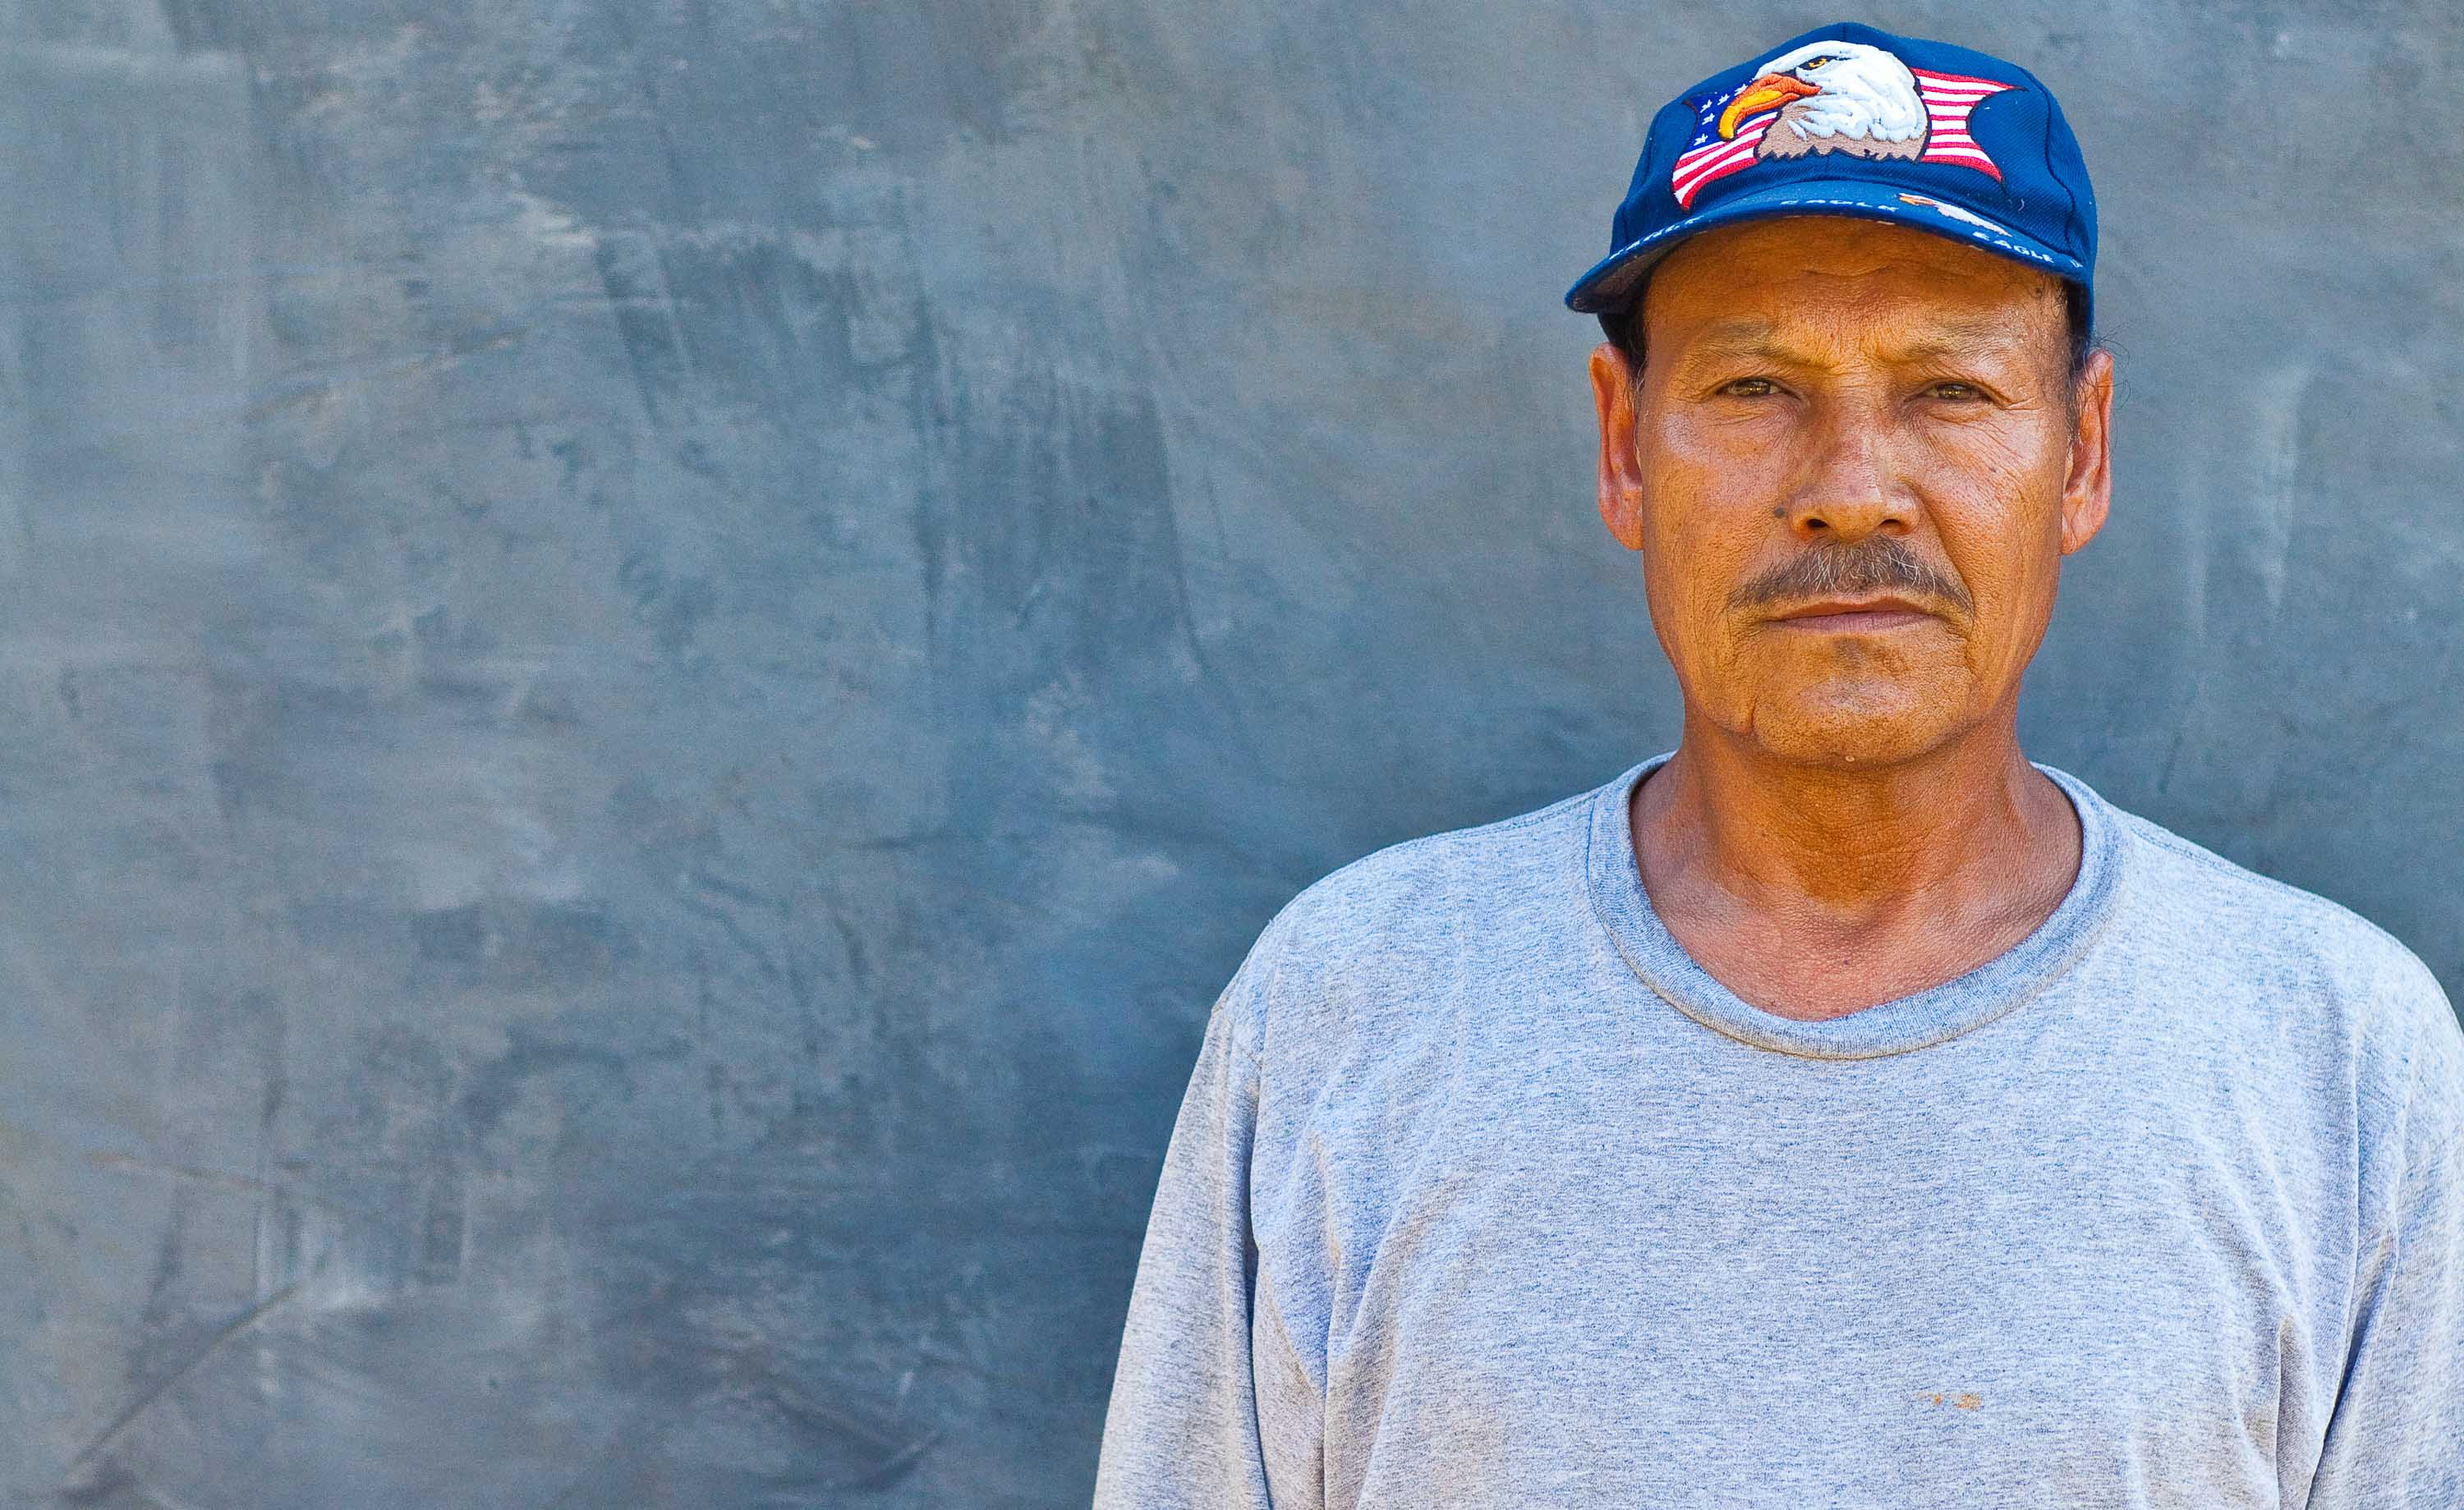 Portrait series of working people  at the workplace, a farm worker near Seattle